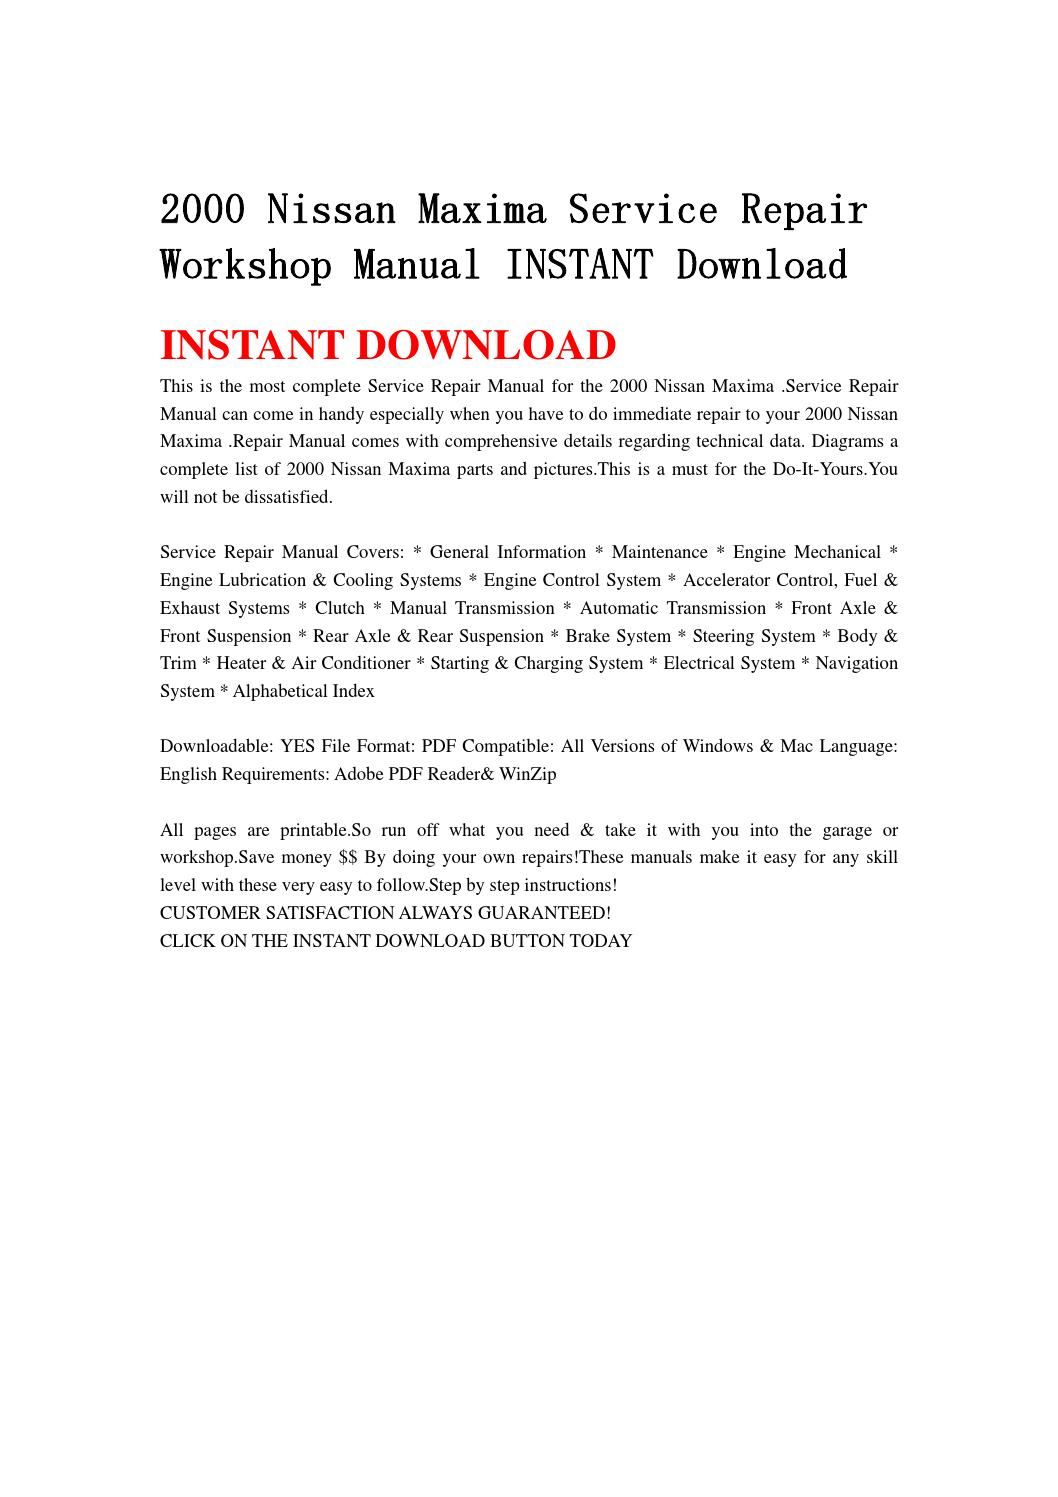 2000 nissan maxima service repair workshop manual instant download by  fjhsegfnnse - issuu